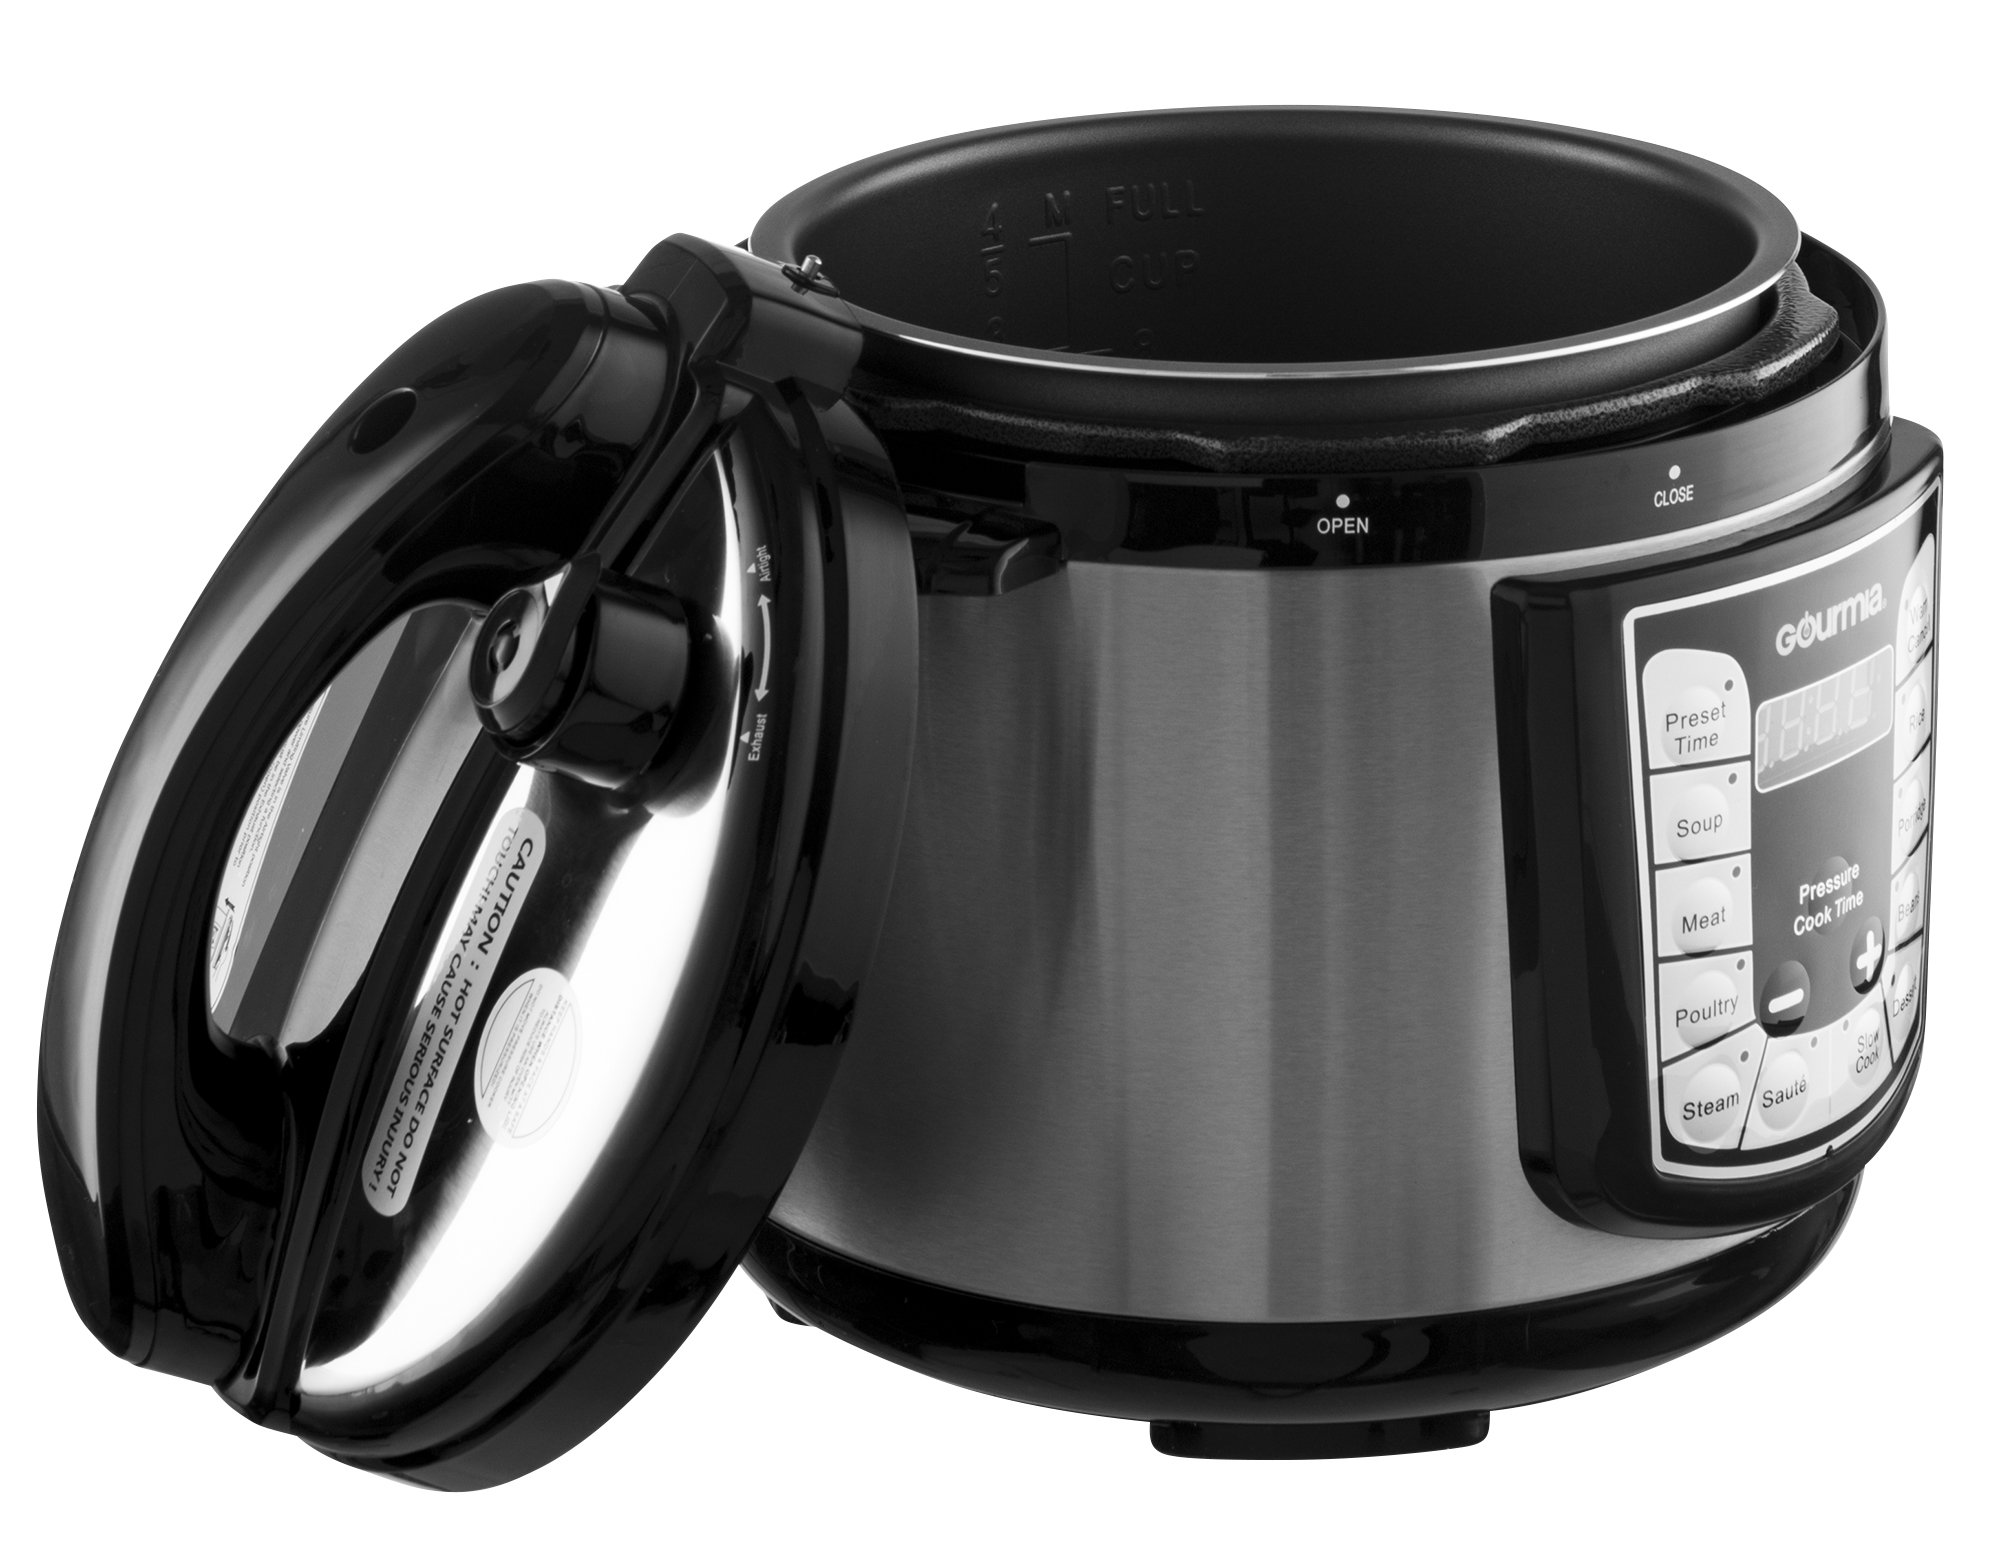 Gourmia GPC400 Smart Pot Electric Digital Multifunction Pressure Cooker with 13 Programmable Cooking Modes, 4 quart Stainless Steel with Steam Rack, 800W, Silver Free Recipe Book Included by Gourmia (Image #2)